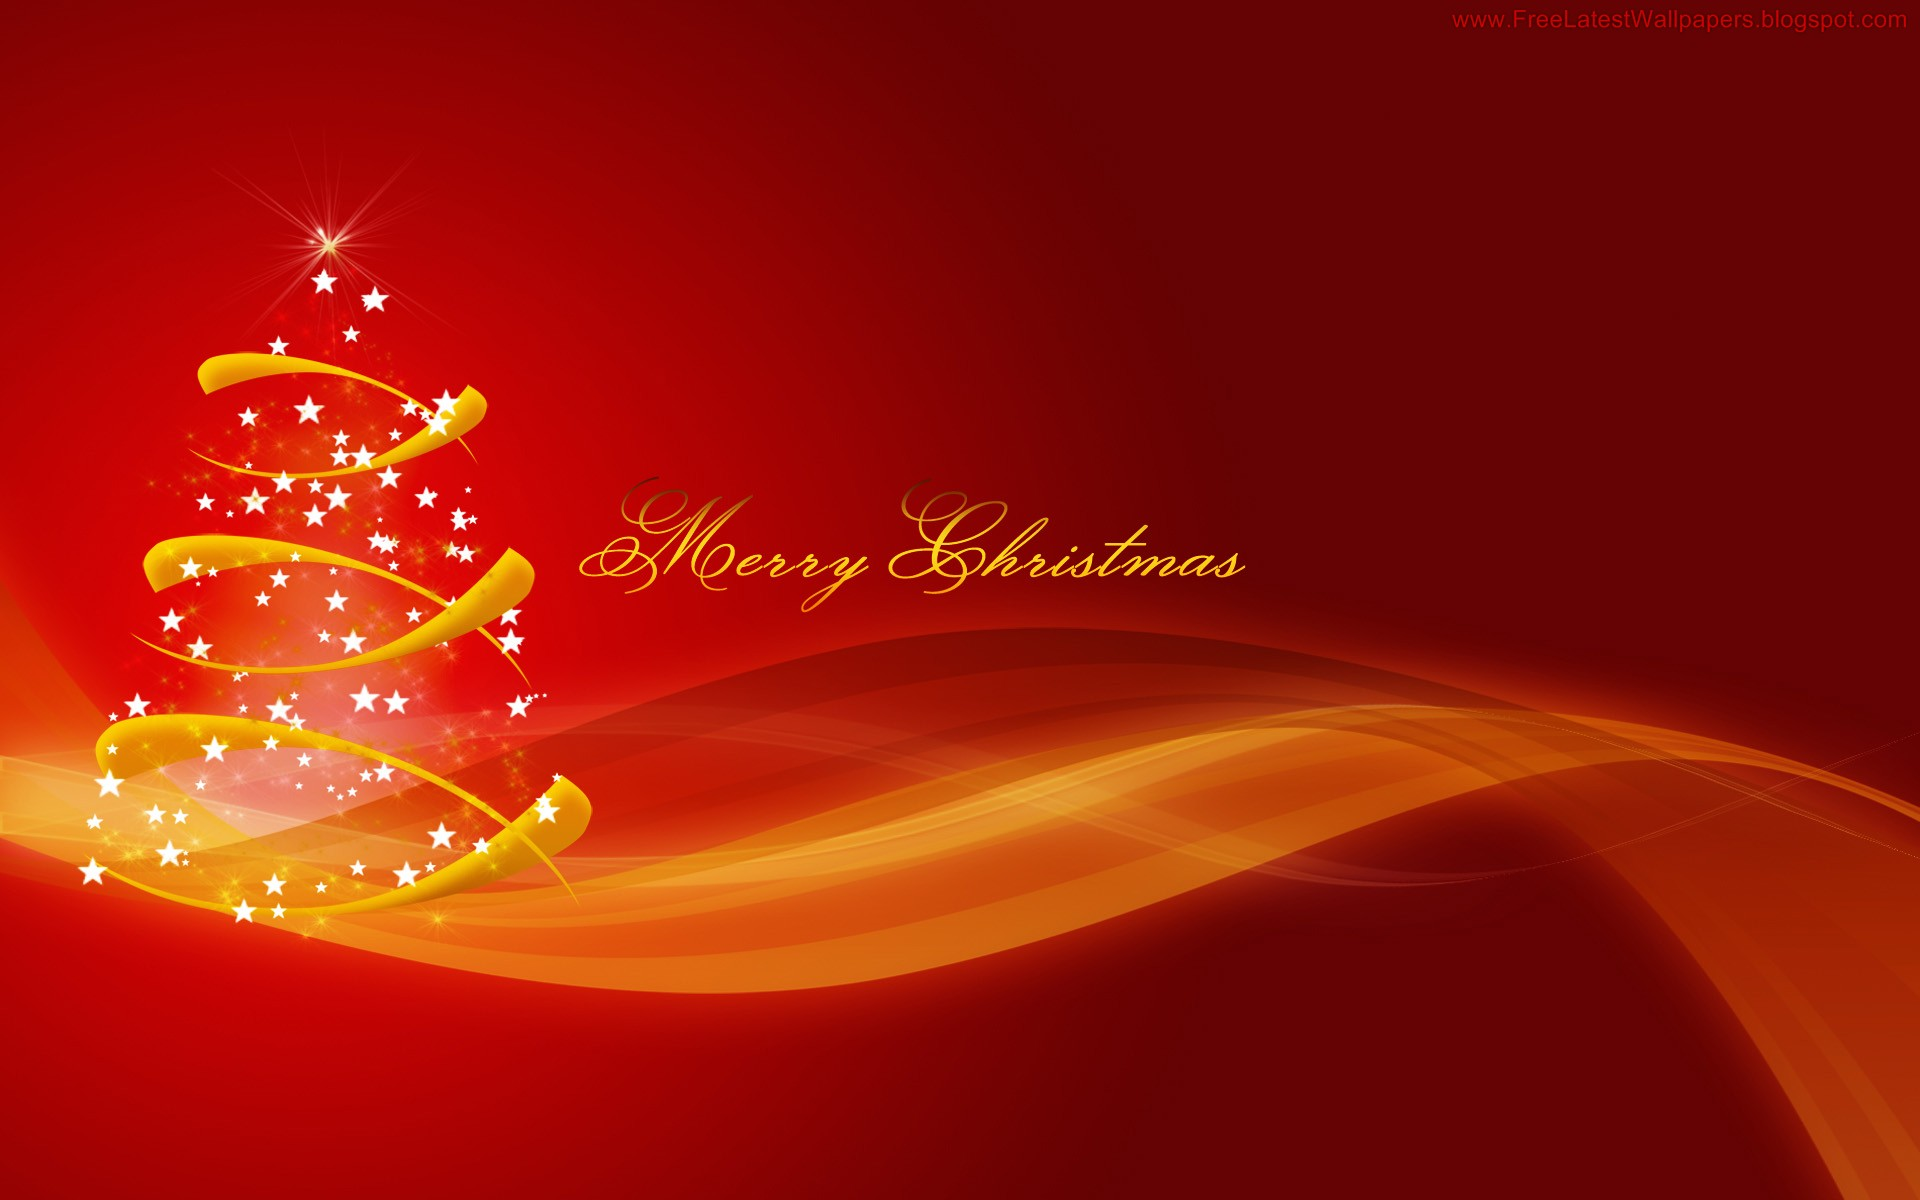 HD Wallpapers Christmas - Download for PC